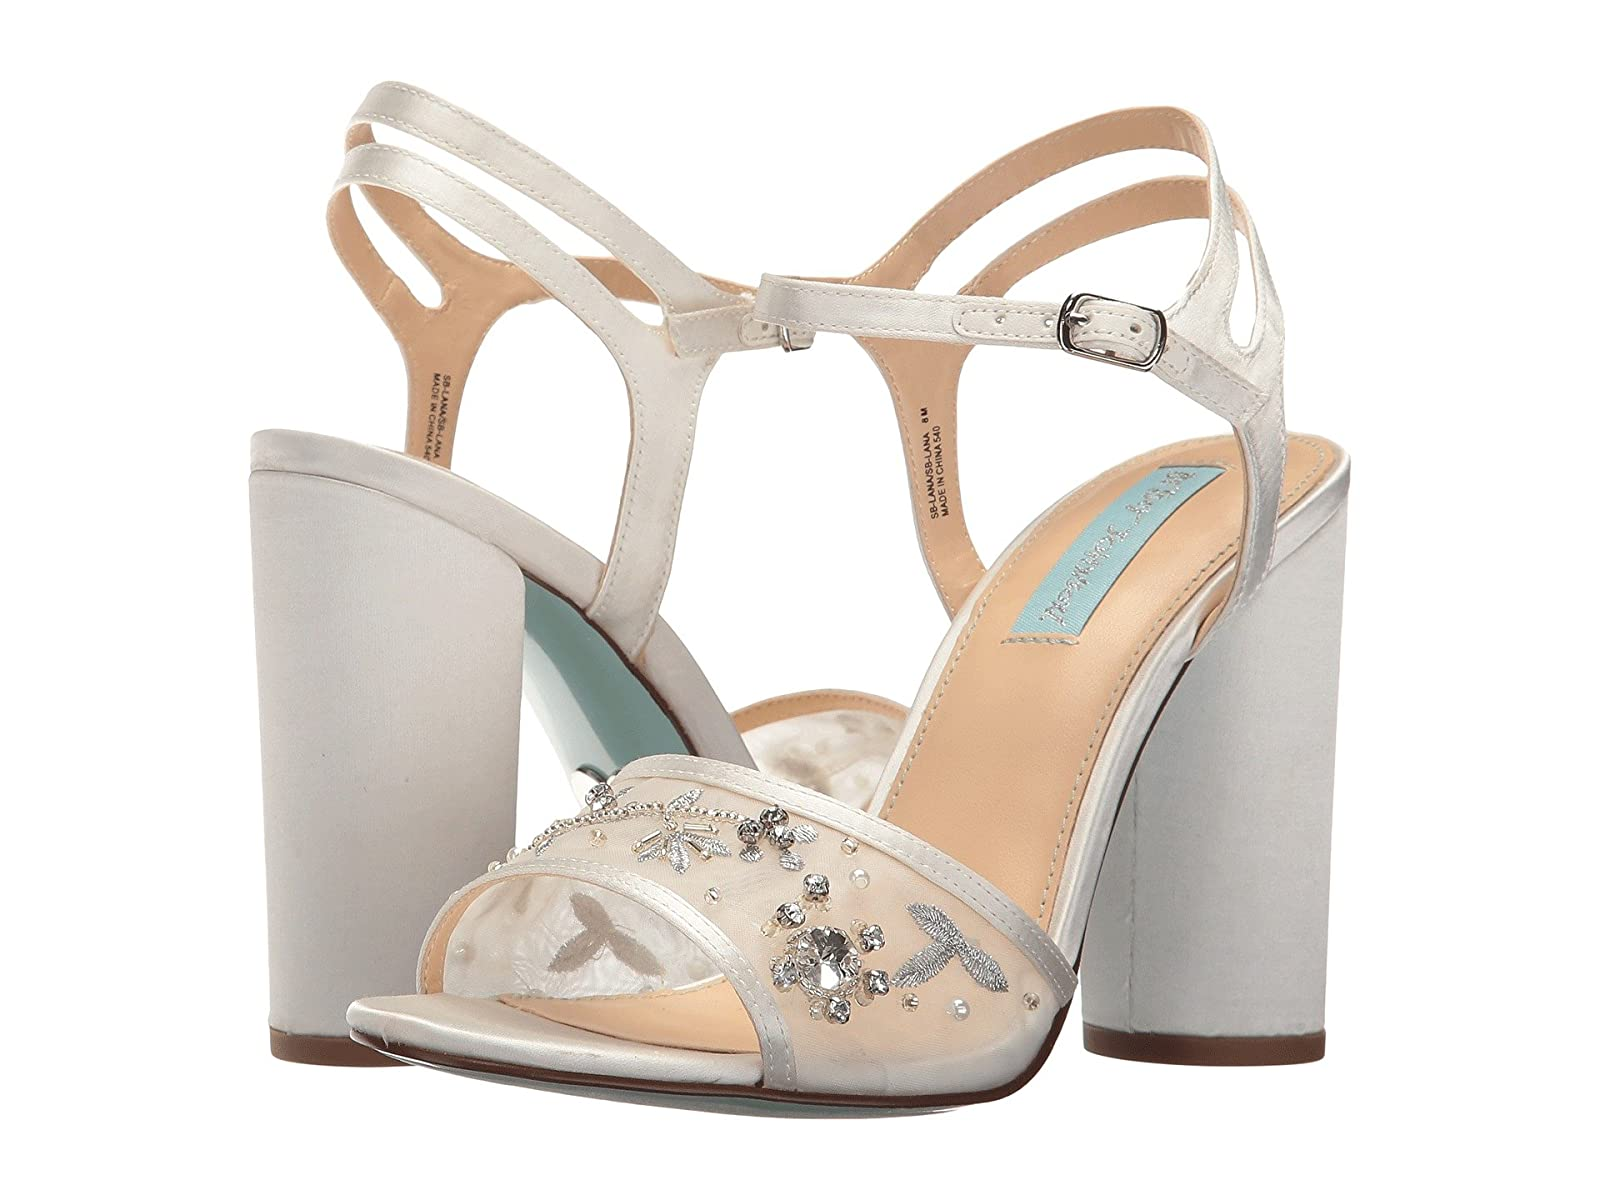 Blue by Betsey Johnson LanaCheap and distinctive eye-catching shoes